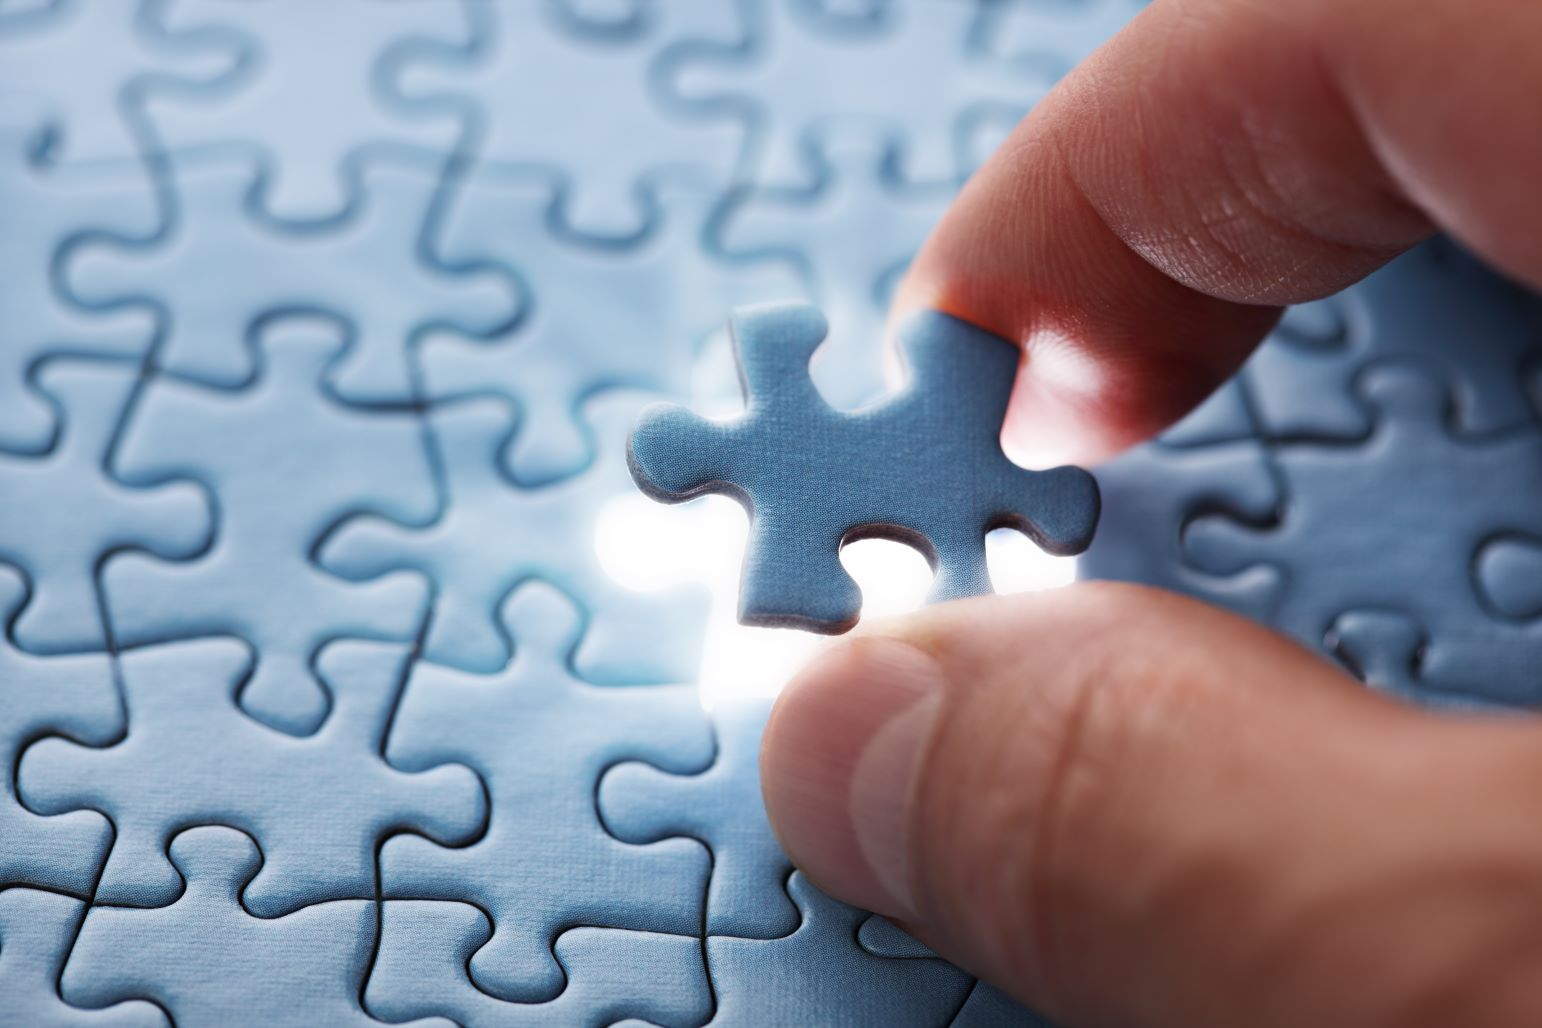 A puzzle piece being added to finish a jigsaw puzzle